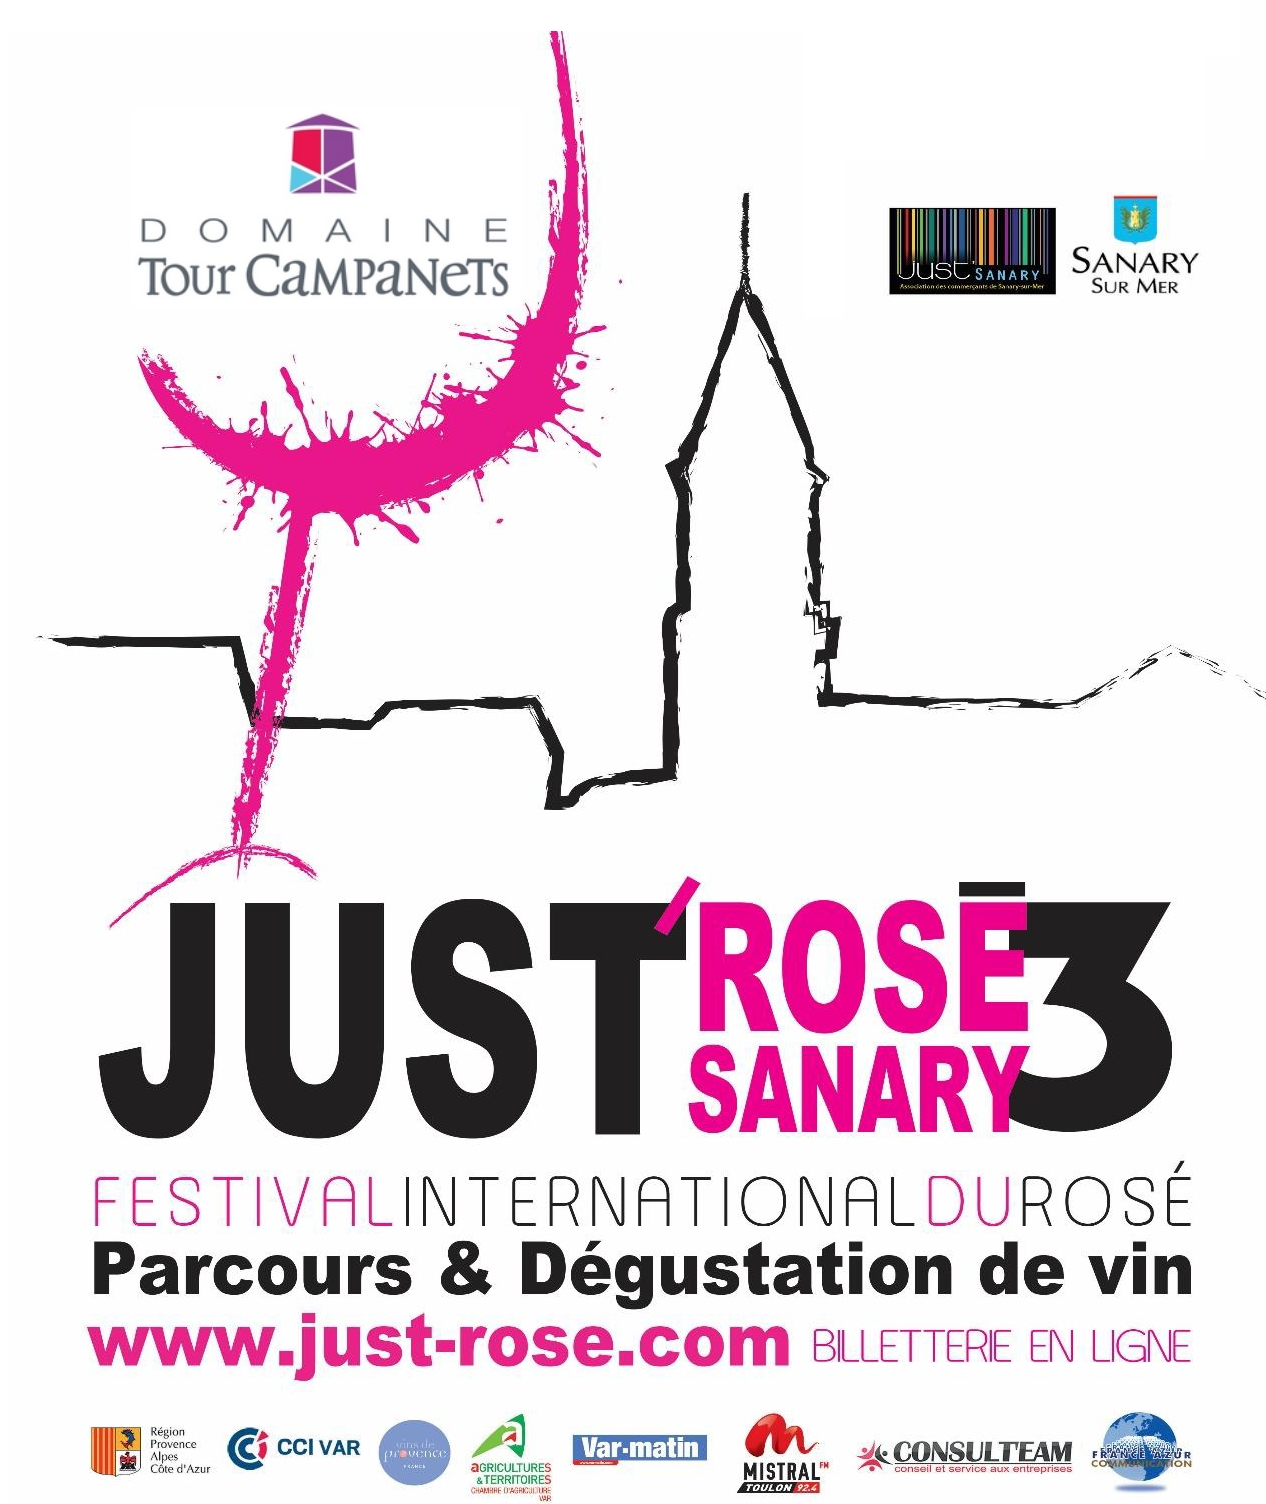 JUST ROSE SANARY le 09 et 10 mai 2015 Stand N° 54